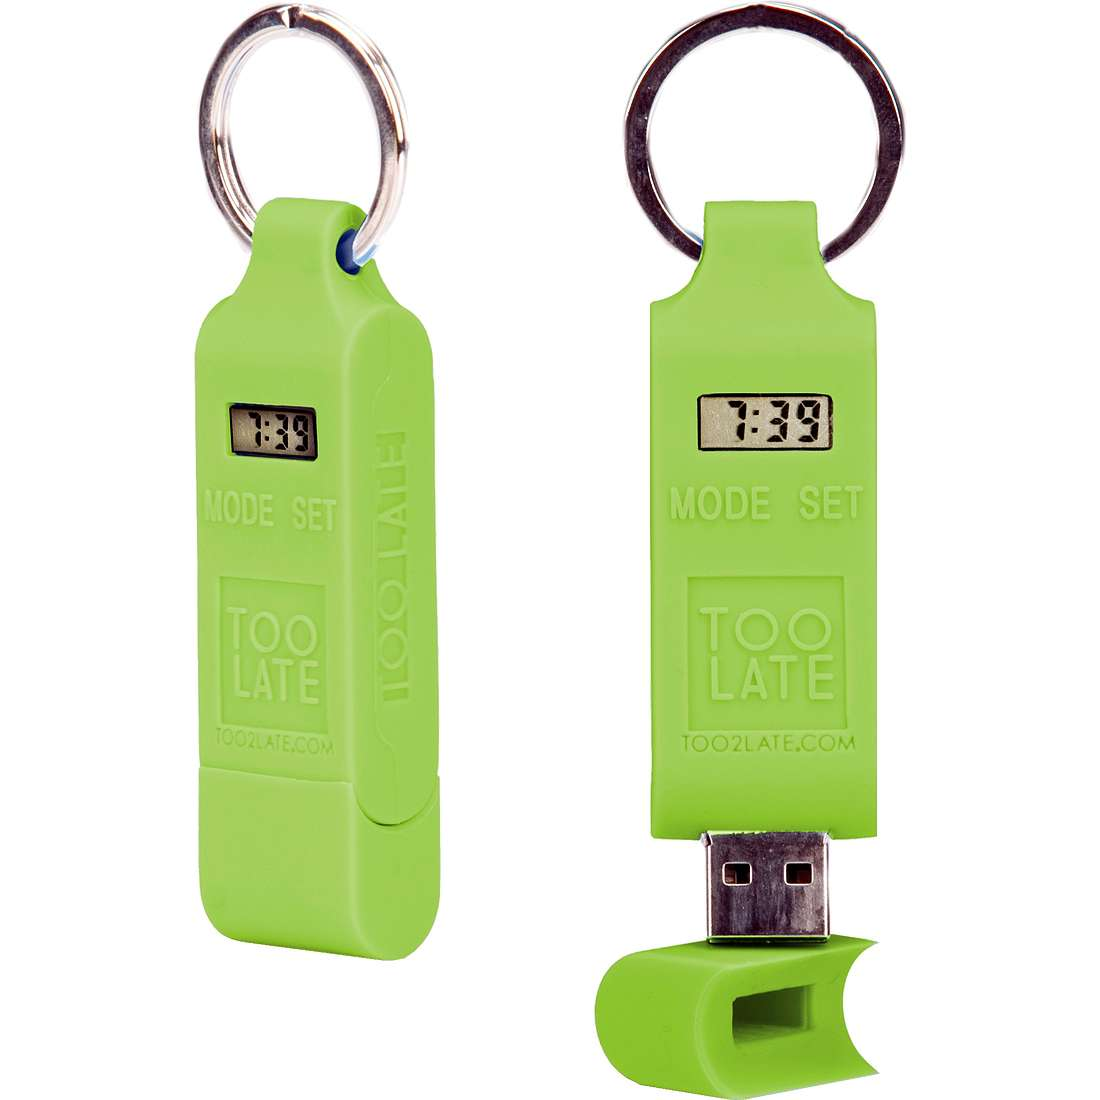 accessorio unisex gioielli Too late Chiavetta USB TOO0777